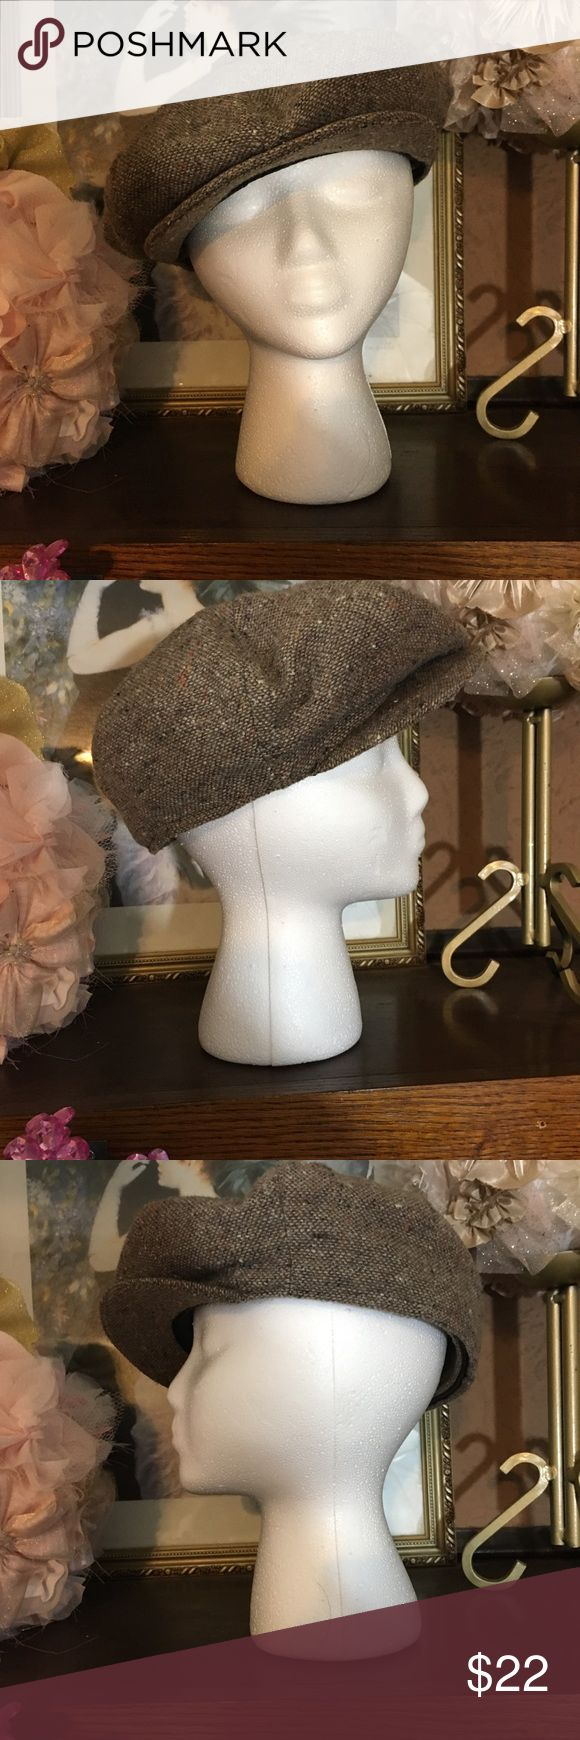 VINTAGE STETSON PAGE BOY CAP BRAND: VINTAGE STETSON  TYPE: PAGE BOY CAP WOOL  COLOR: BROWNS  SIZE: O/S  FABRIC CONTENT: WOOL WITH FAUX FUR LINING  CONDITION: EUC Stetson Accessories Hats